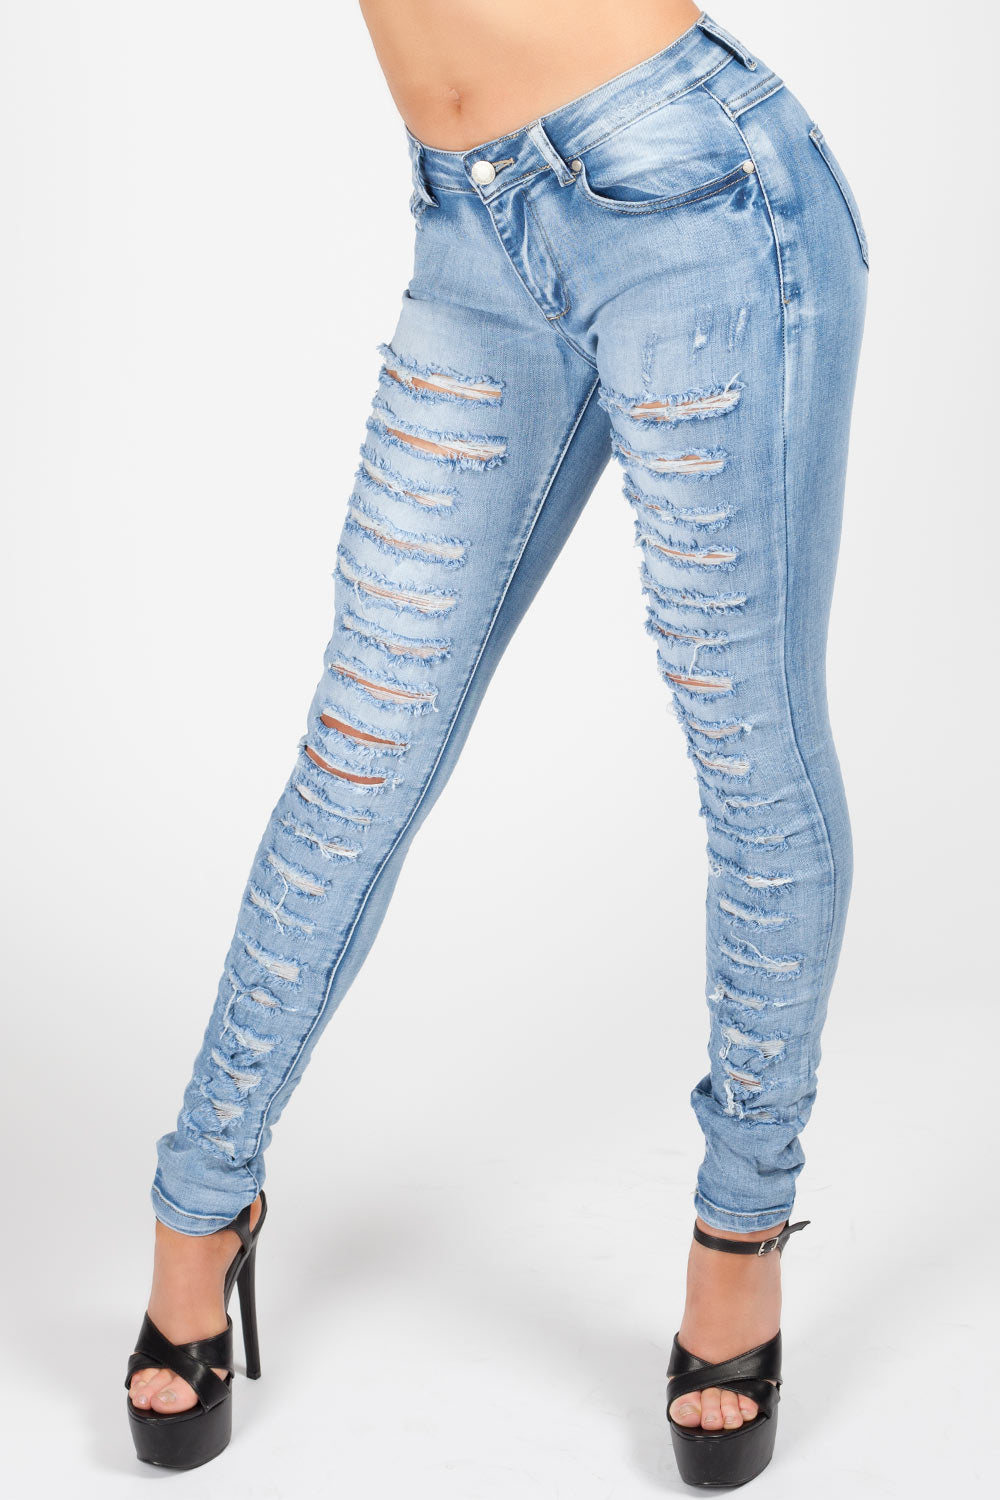 highly coveted range of new york shop Skinny Ripped Jeans Light Wash